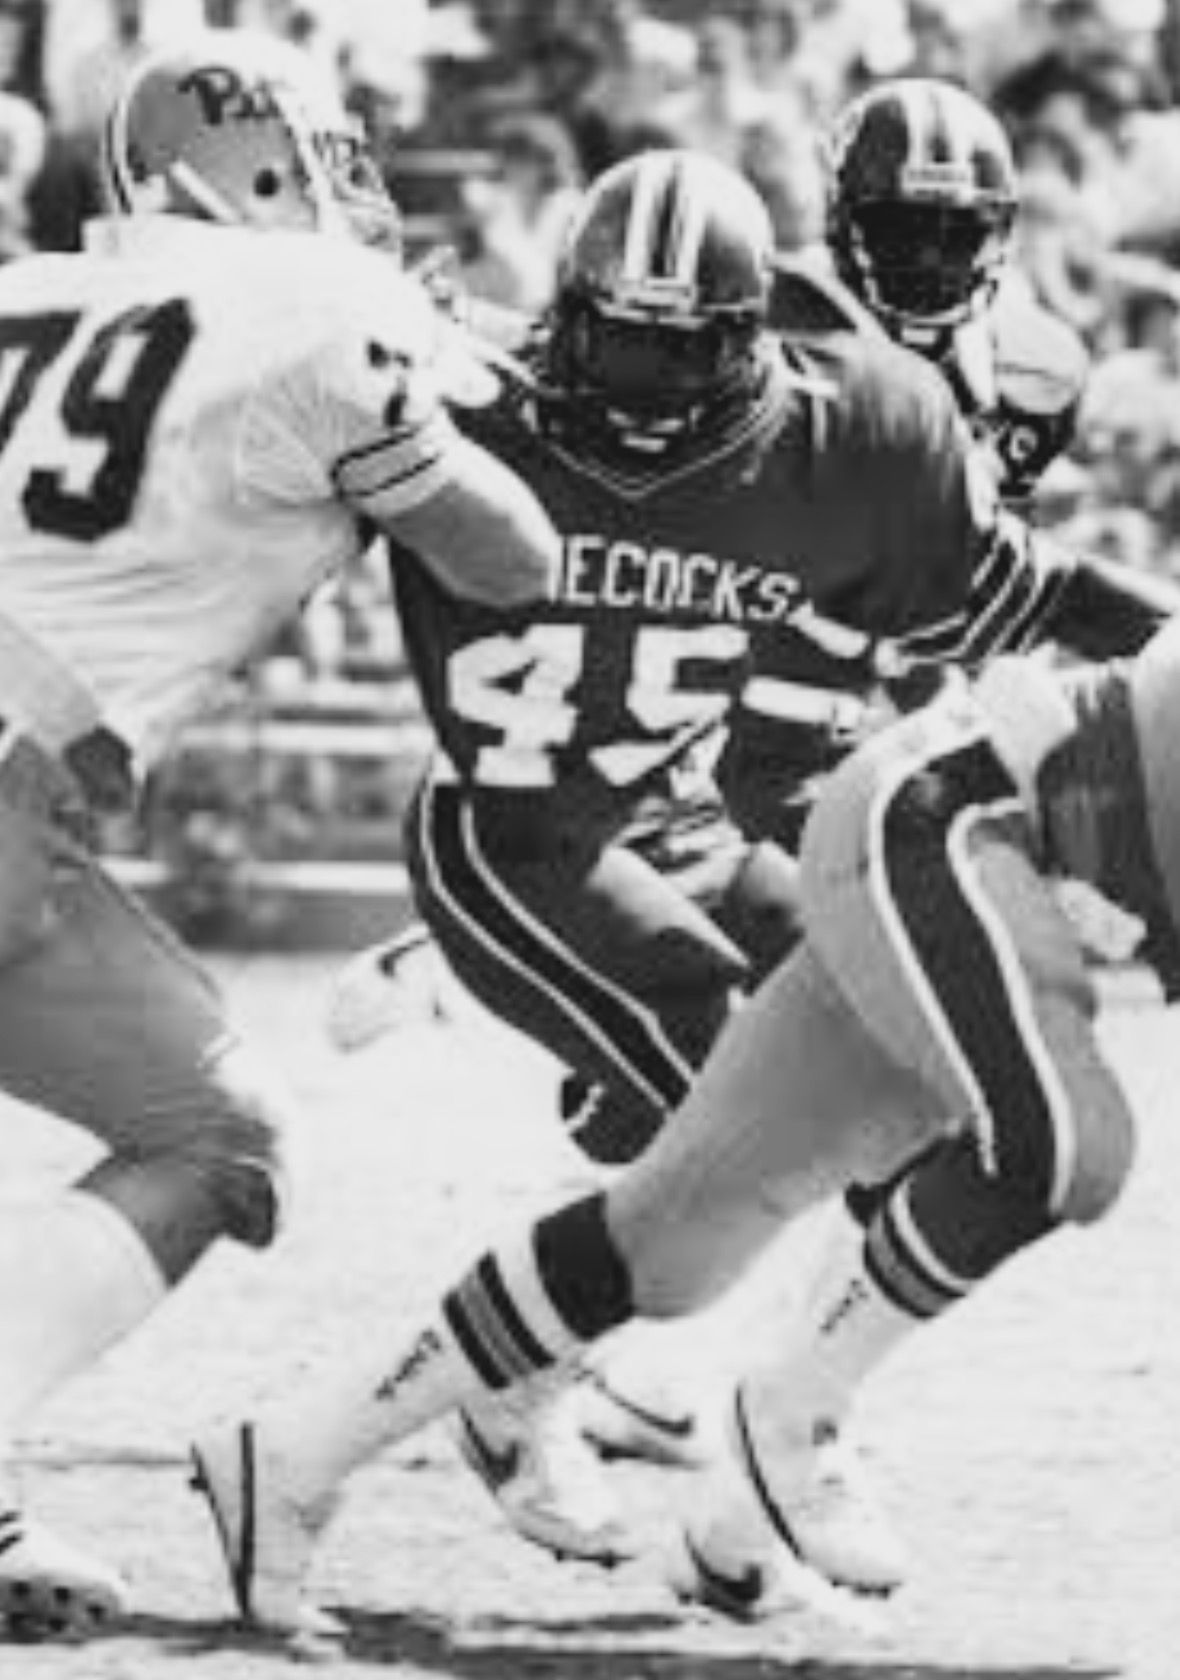 South Carolina Gamecocks LB 45 James Seawright 1981 1984